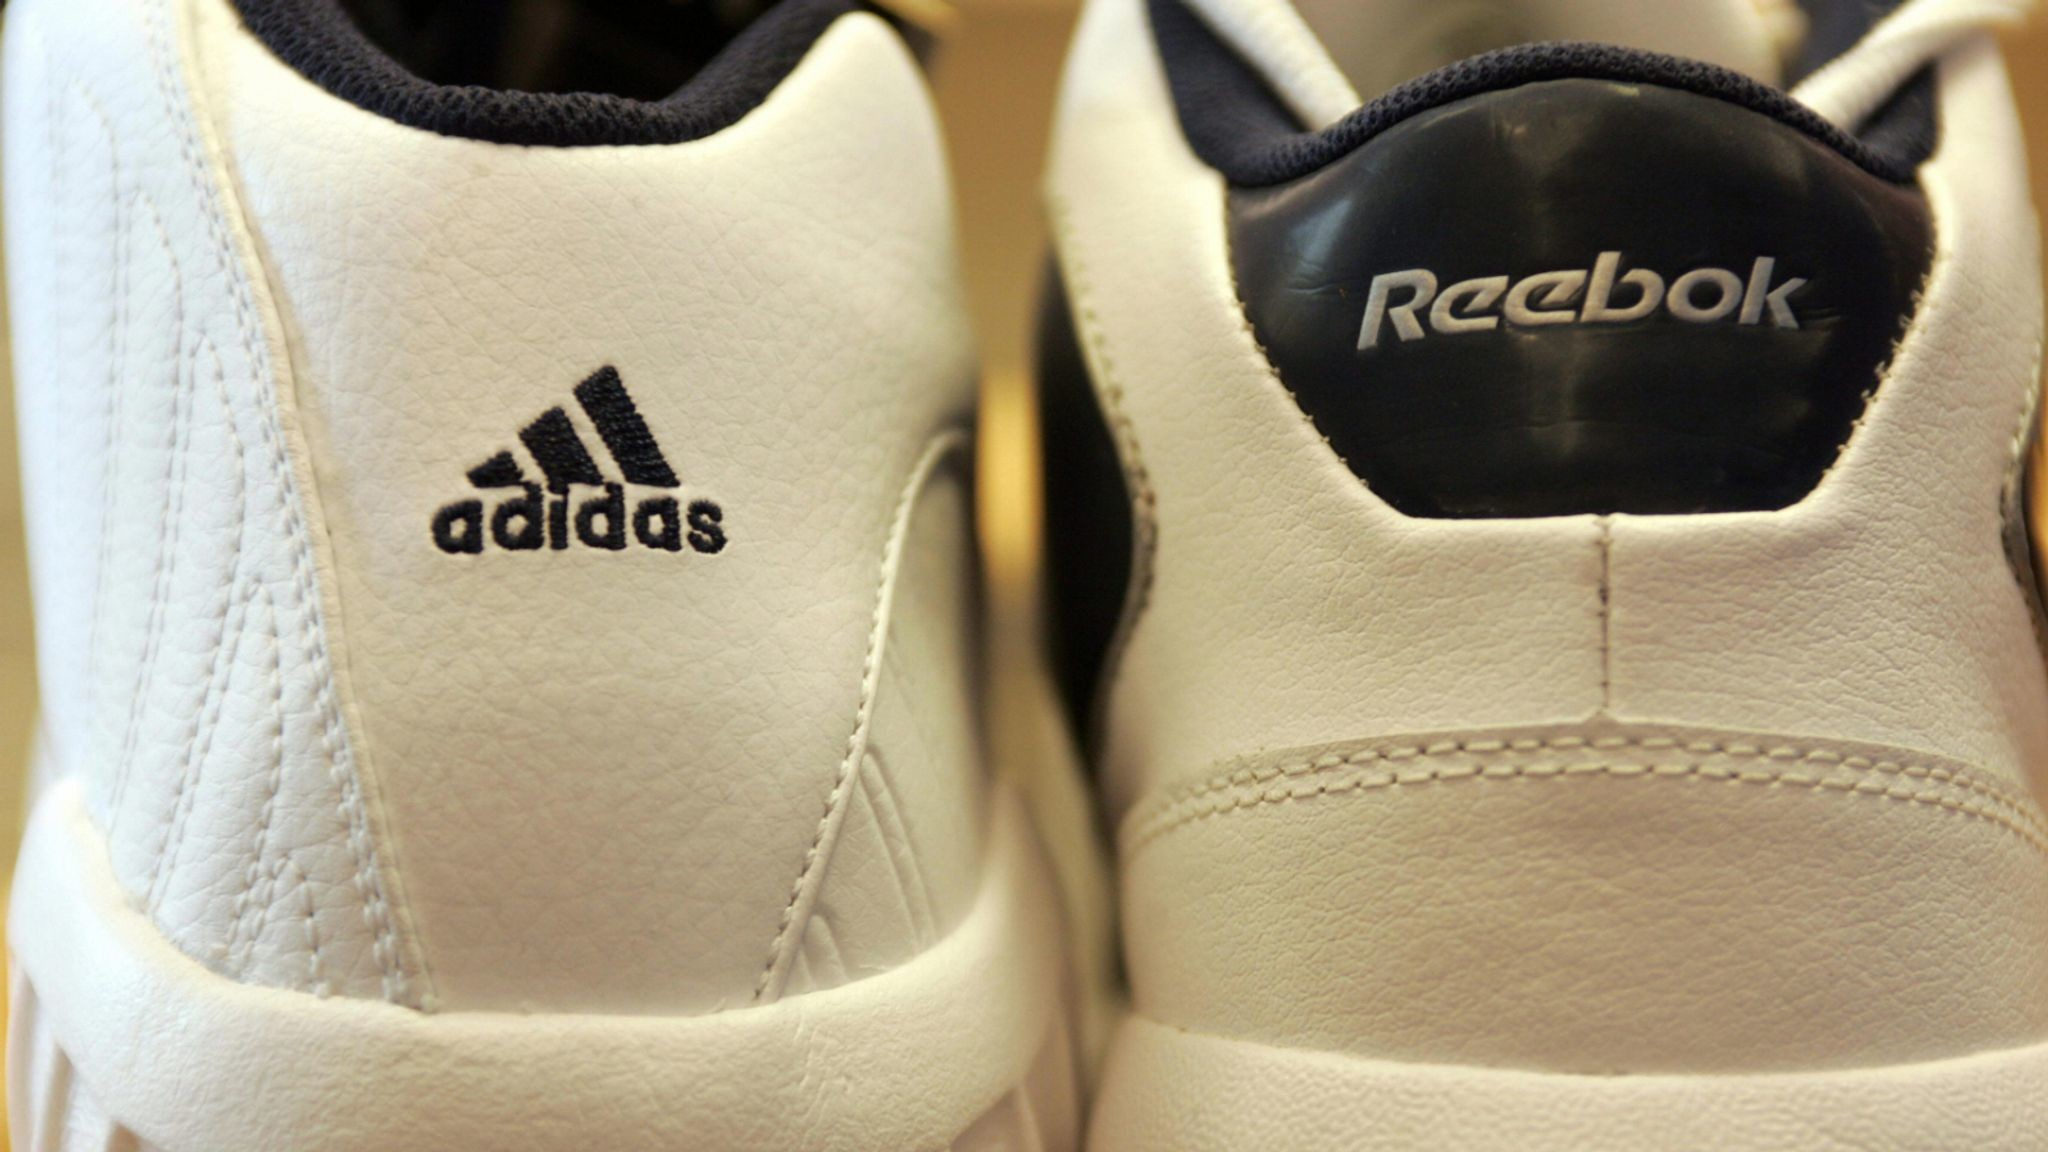 Adidas' ownership of the Reebok brand may be coming to an end, according to a report from Manager Magazine today